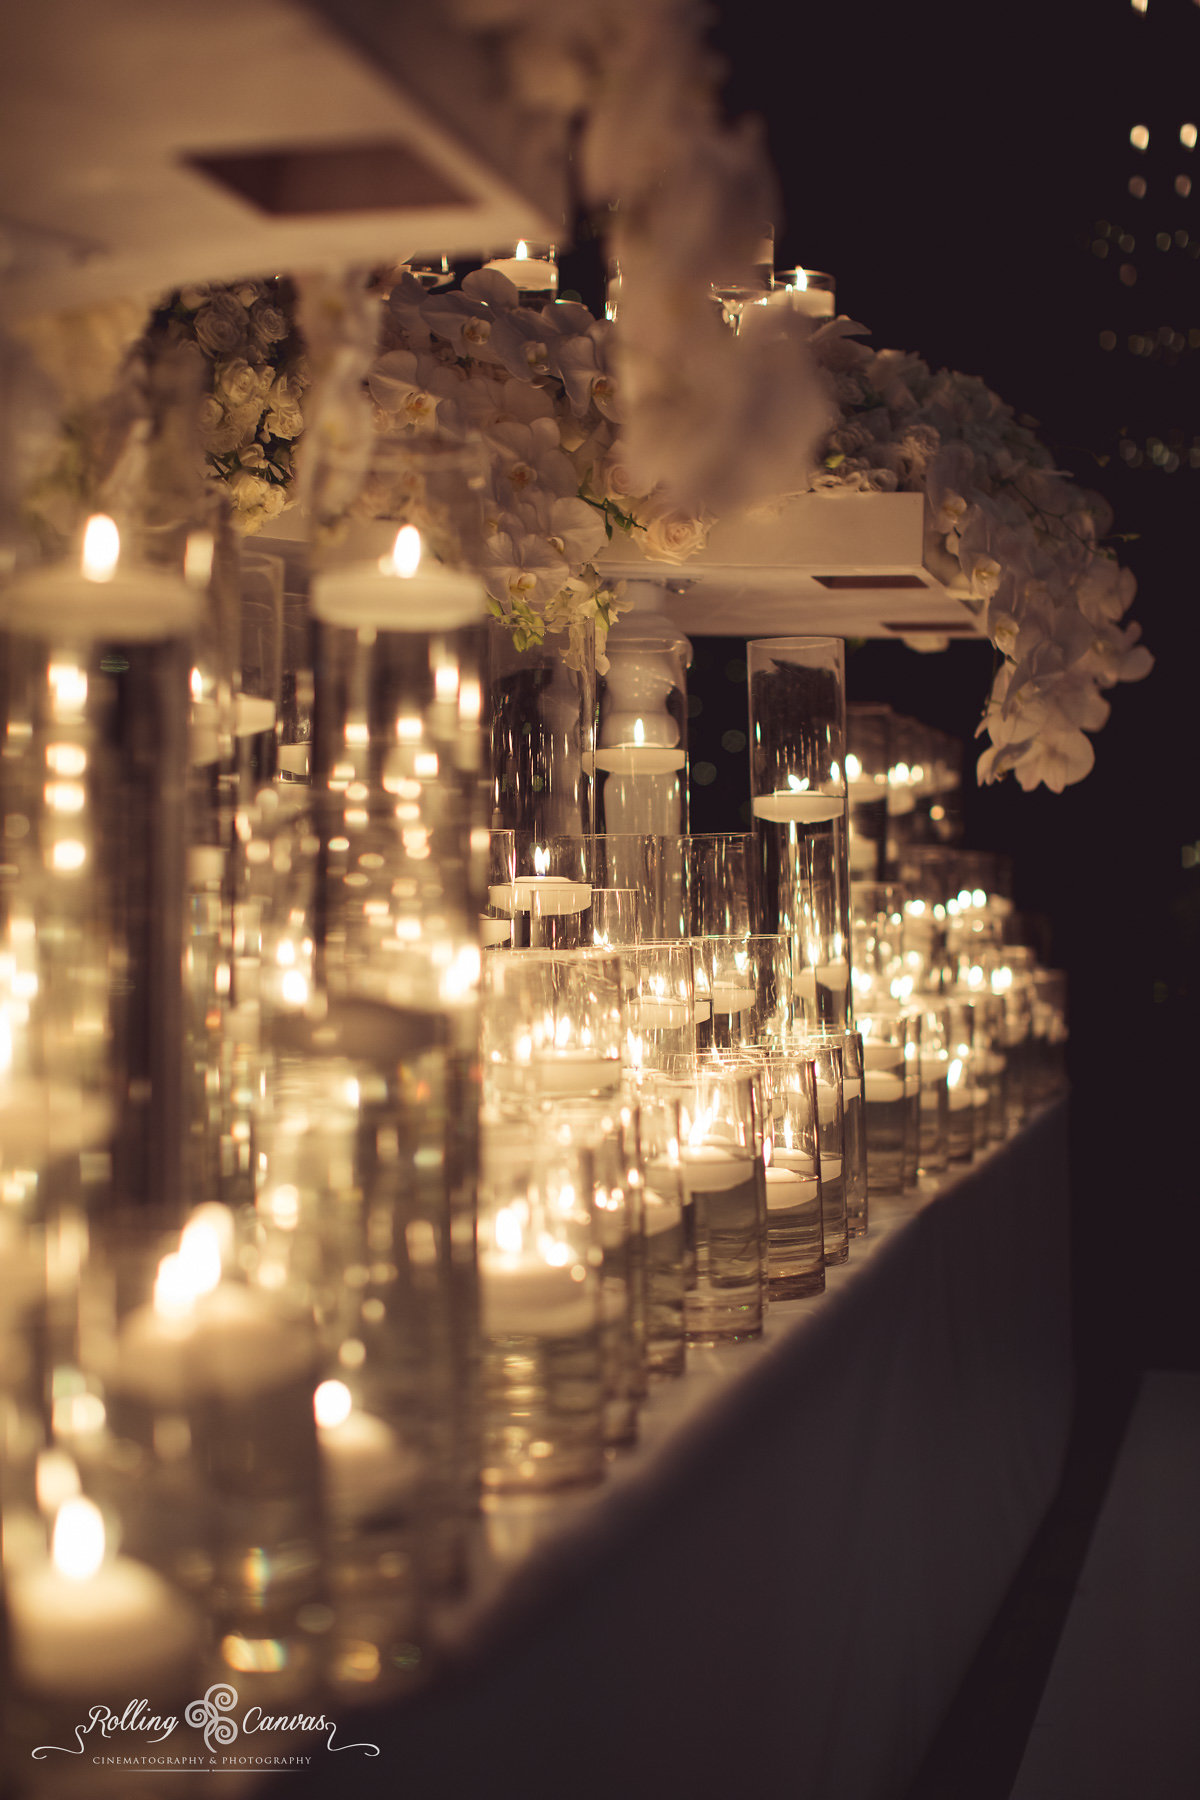 Wedding_Photography_Sydney_Rolling_Canvas_Presentation_bridal_table_elegant_reception_chandeliers_fairylights_white_dancefloor_luxury_linen_decor_Hyatt_Regency_Sydney-57251.jpg